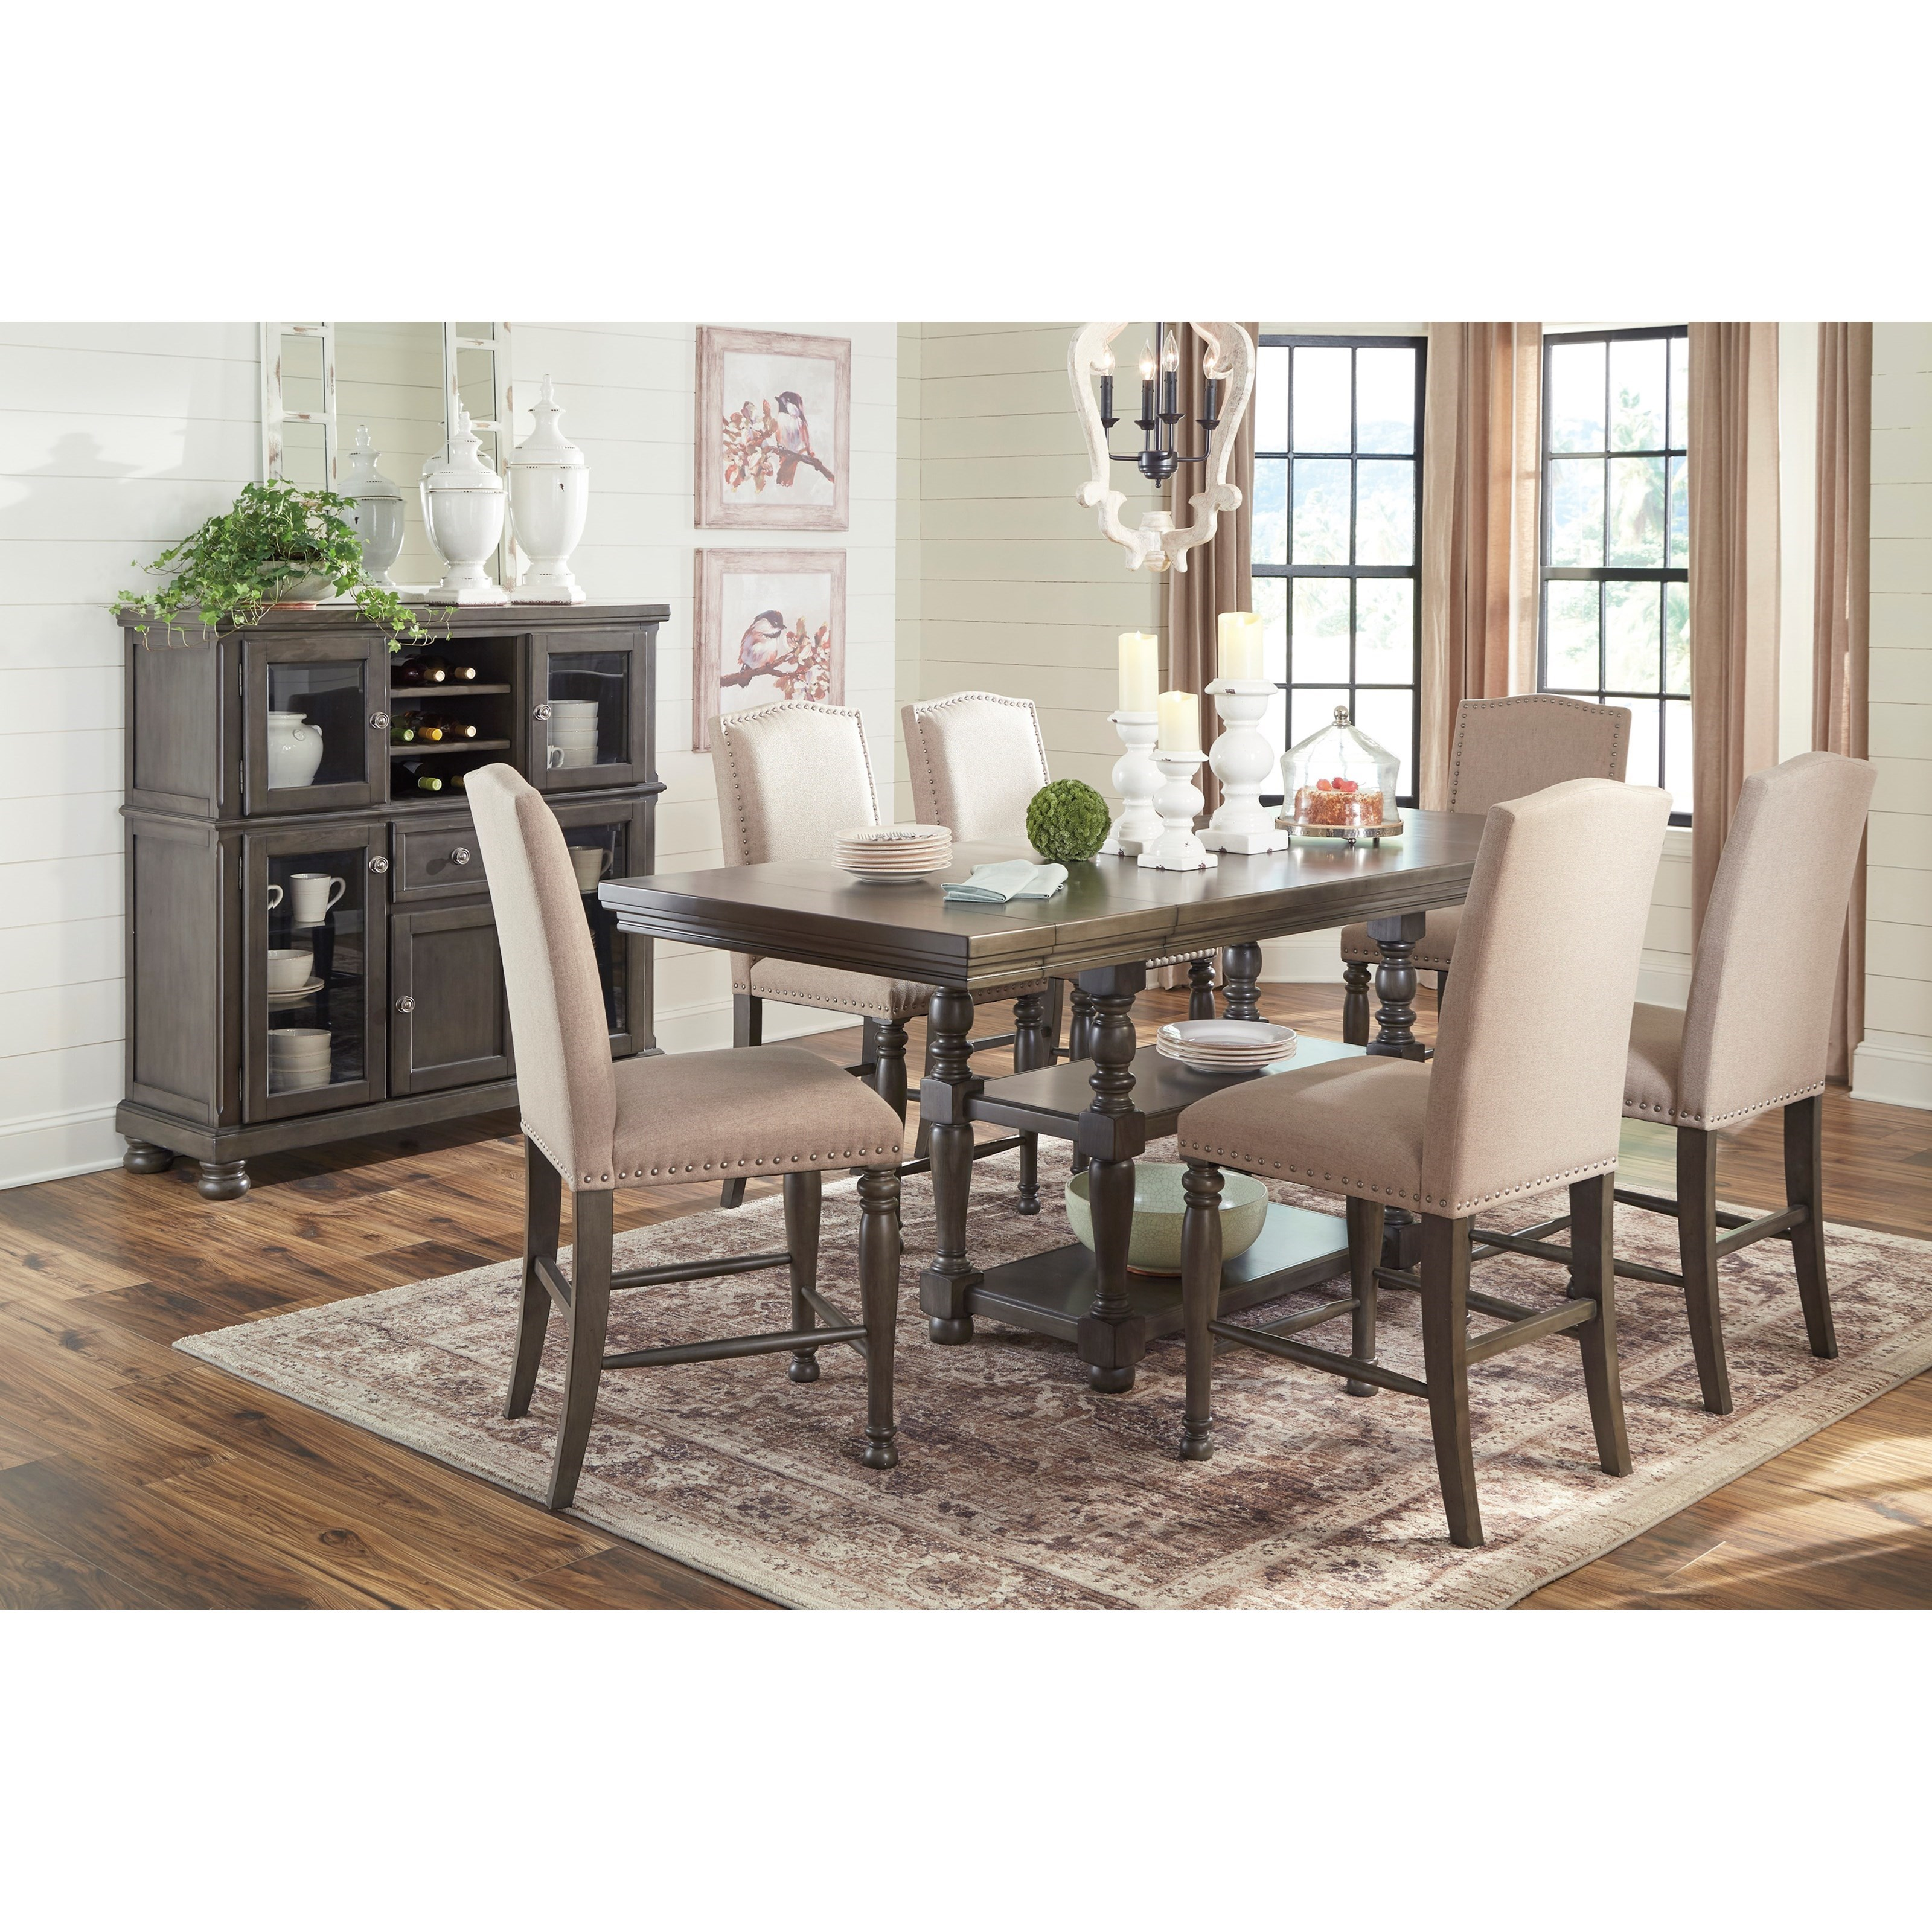 Signature Design By Ashley Furniture Hayley 7 Piece Dining: Signature Design By Ashley Audberry Transitional Seven